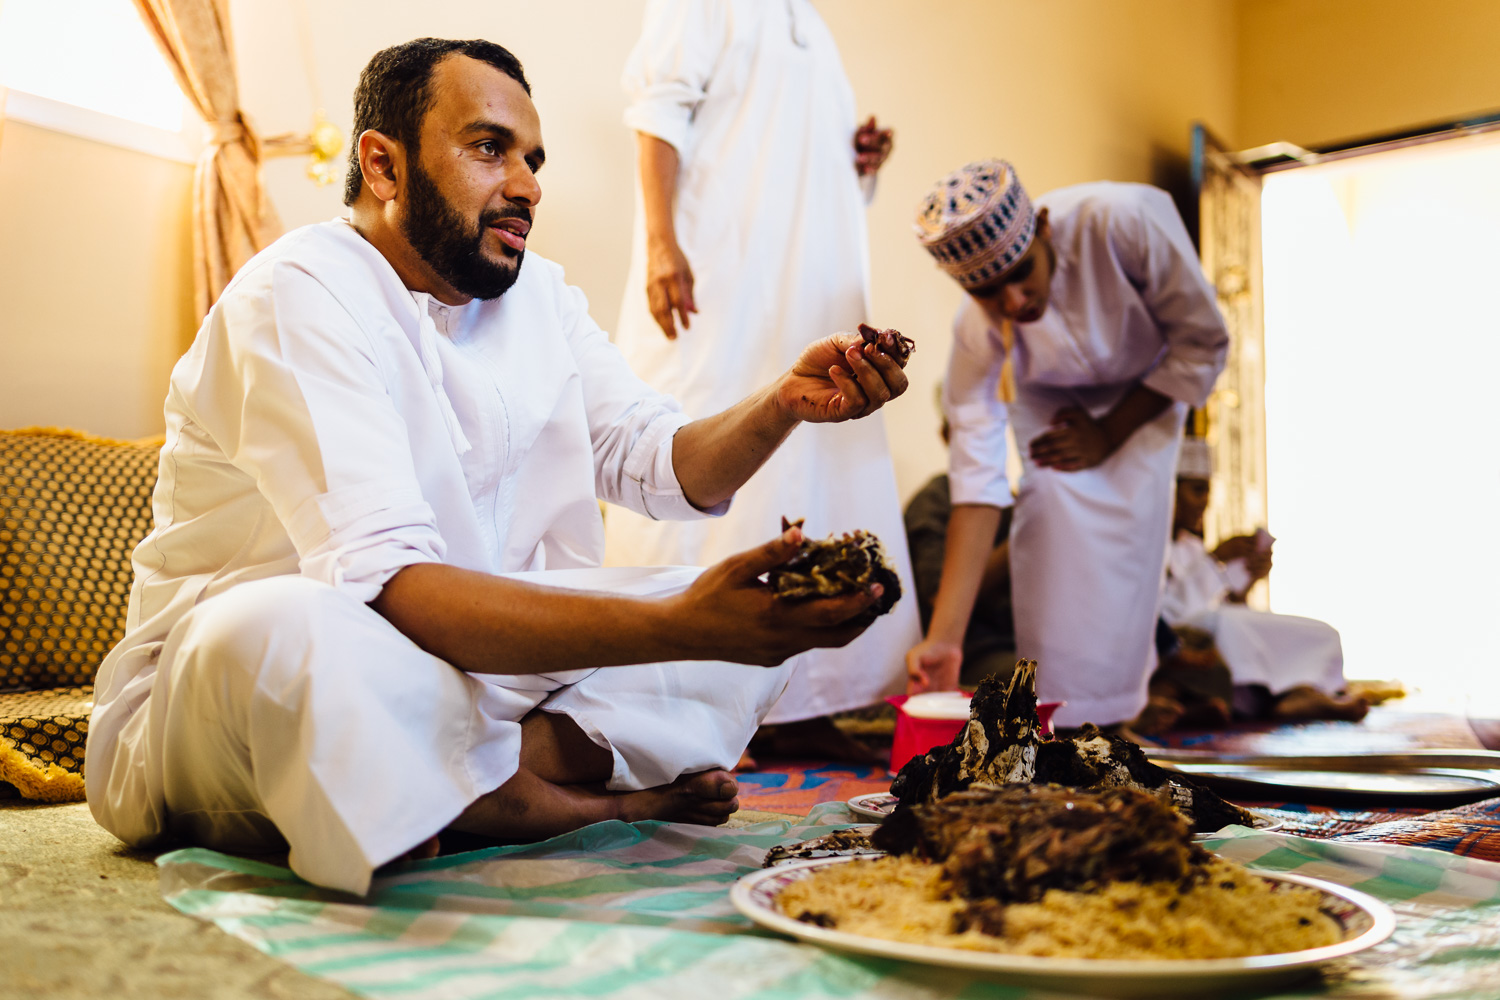 Food-Feast-Eid-Tradition-Village-Oman-Daniel-Durazo-Photography-Durazophotography